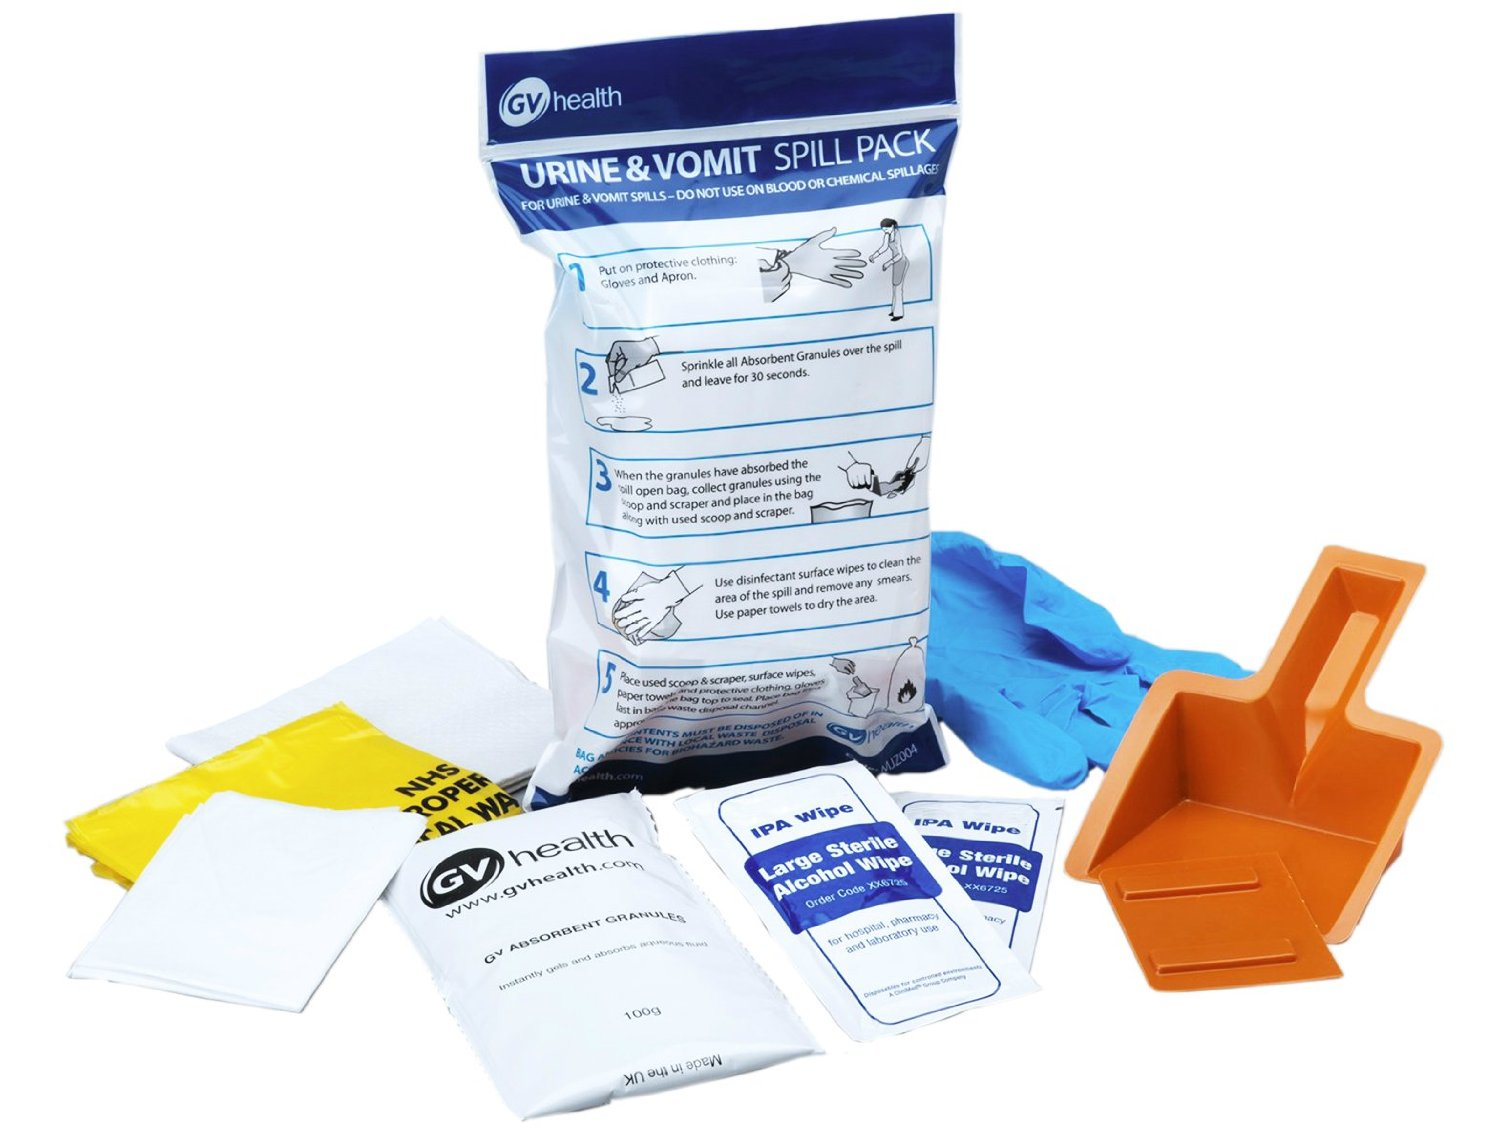 GV Health Vomit and Urine Spill Pack thumbnail image 1